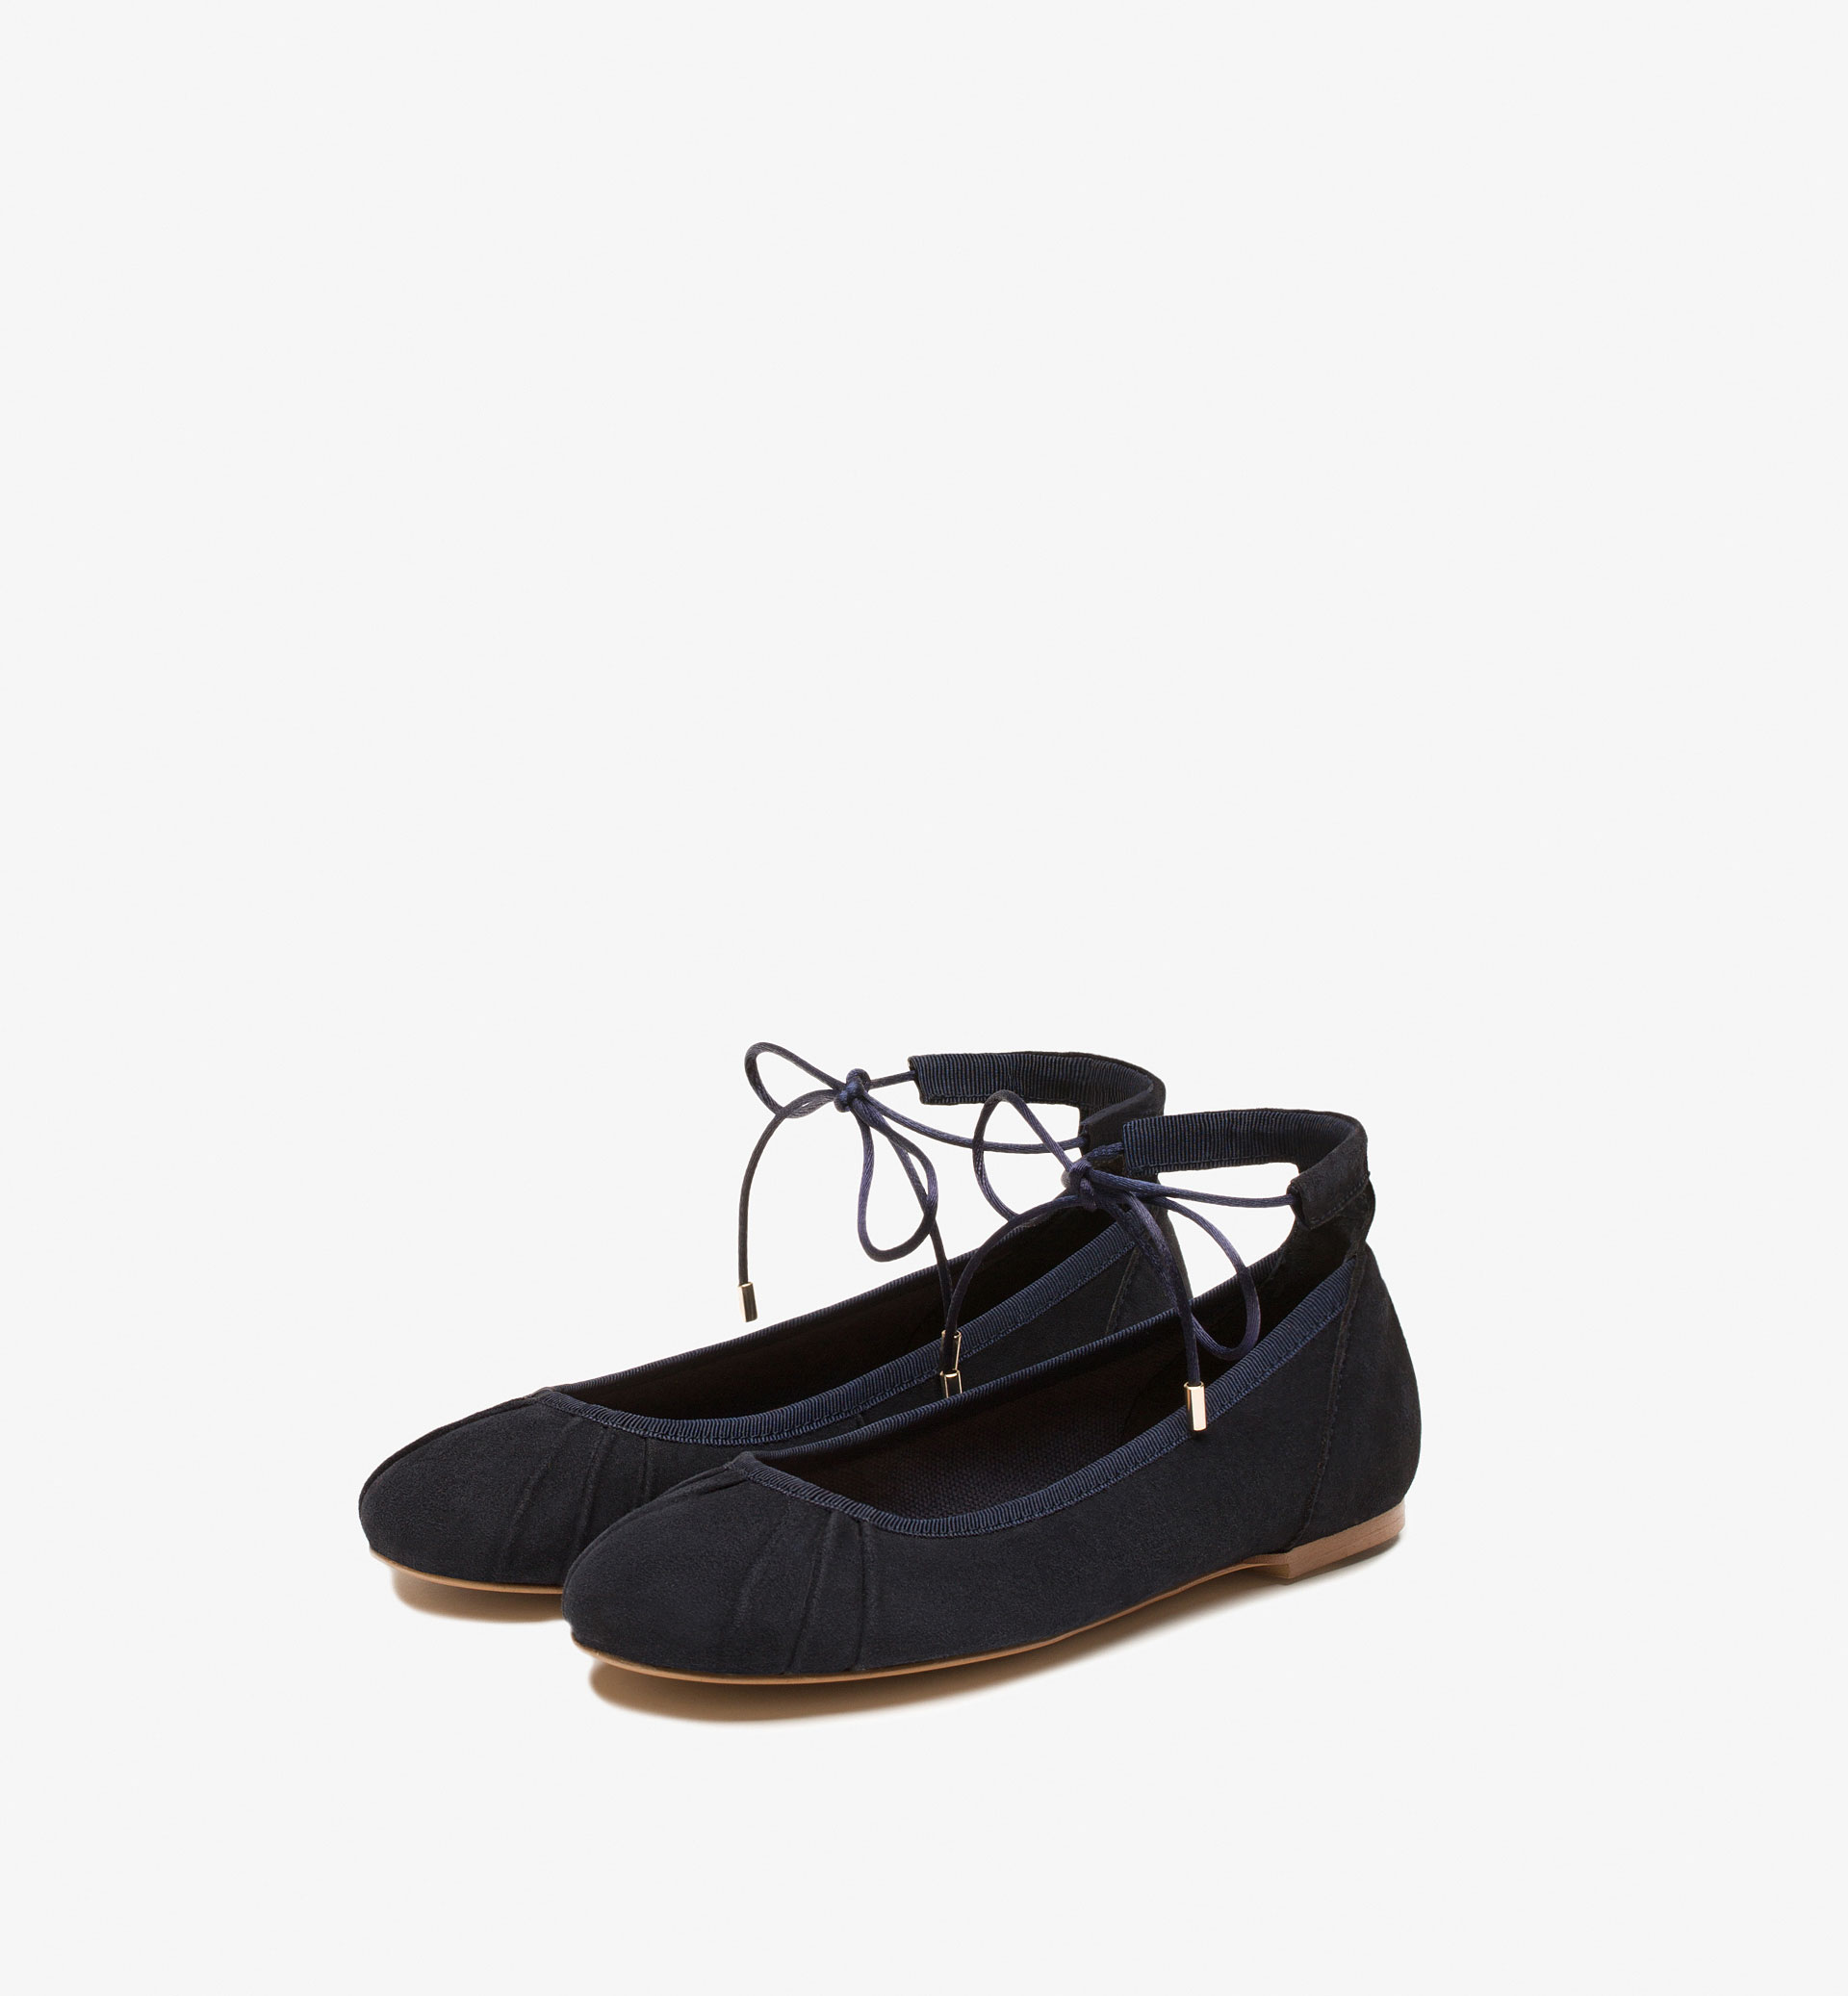 BALLERINAS WITH ANKLE STRAP